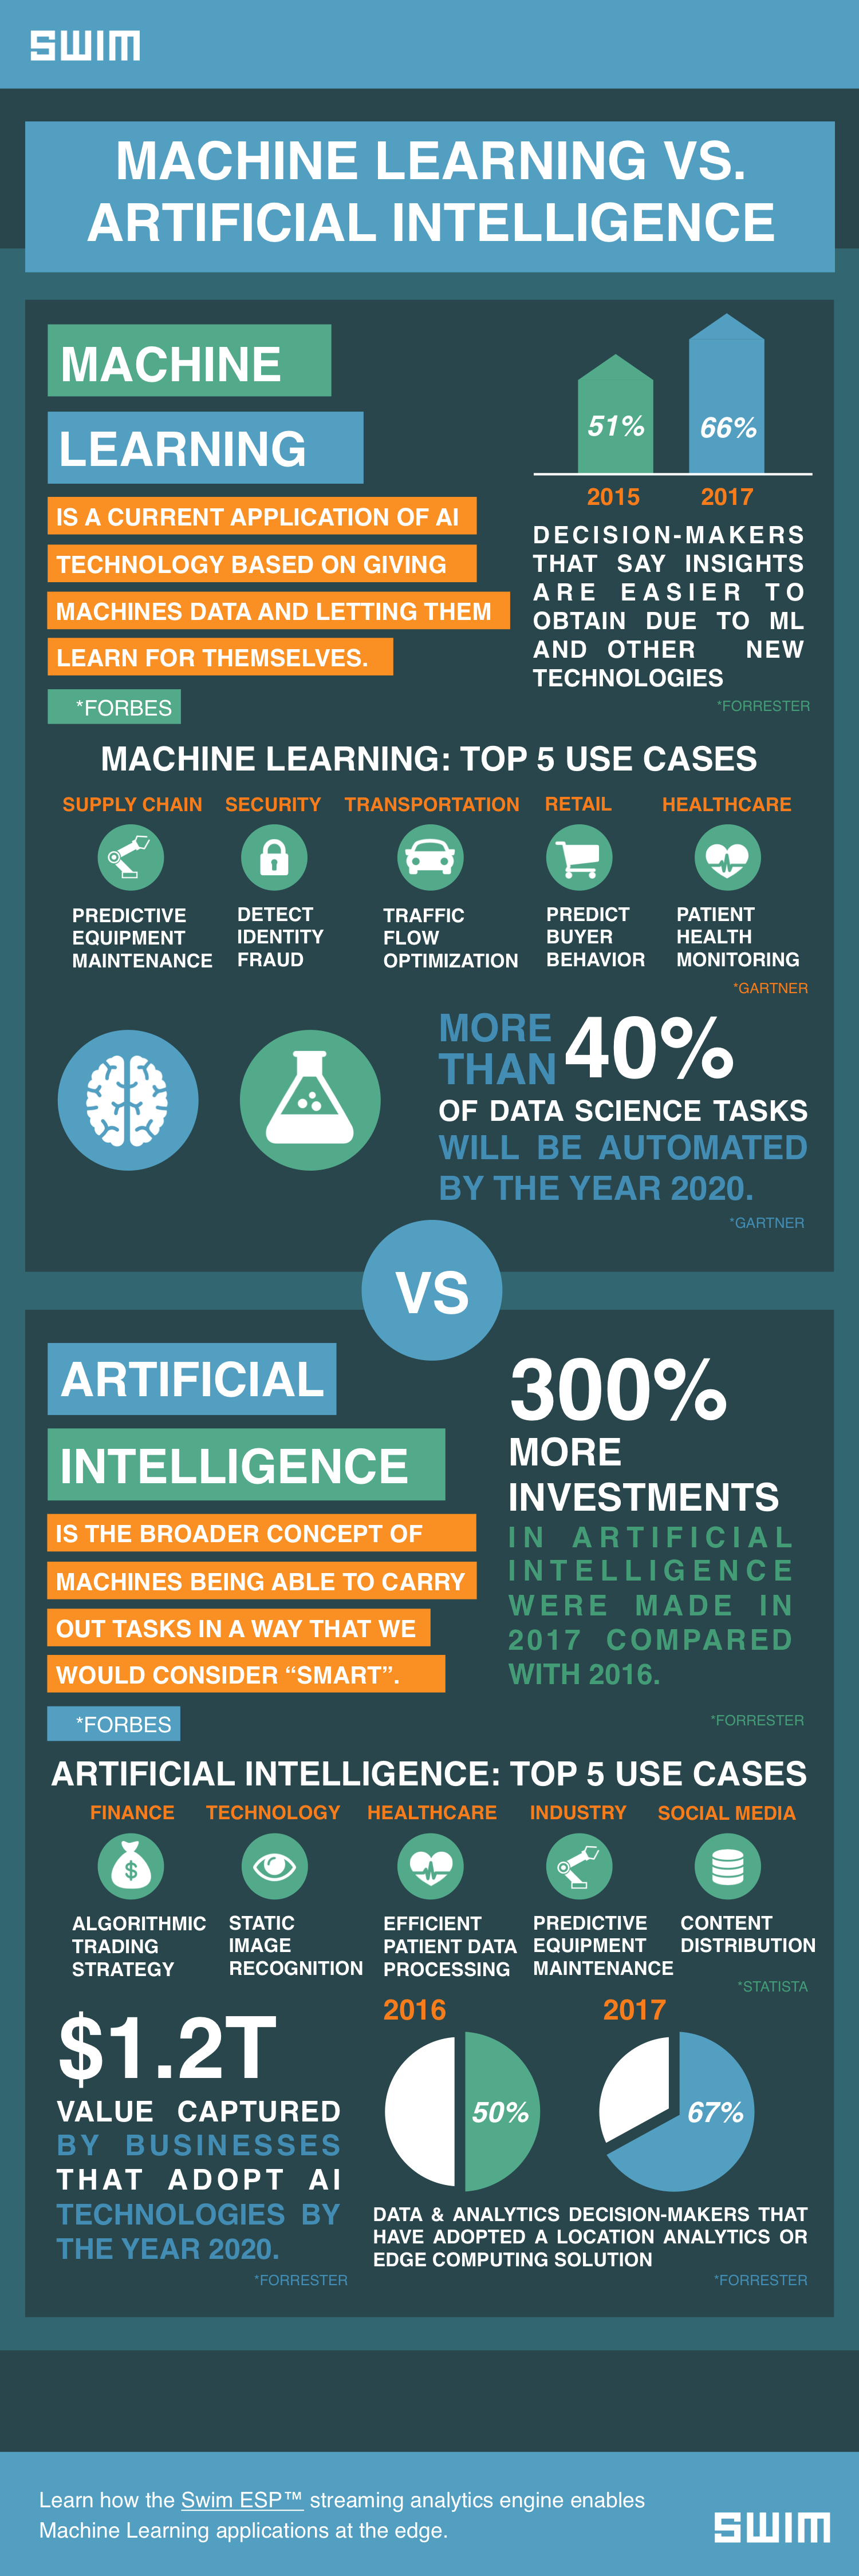 Machine Learning vs. Artificial Intelligence | Swim Inc.